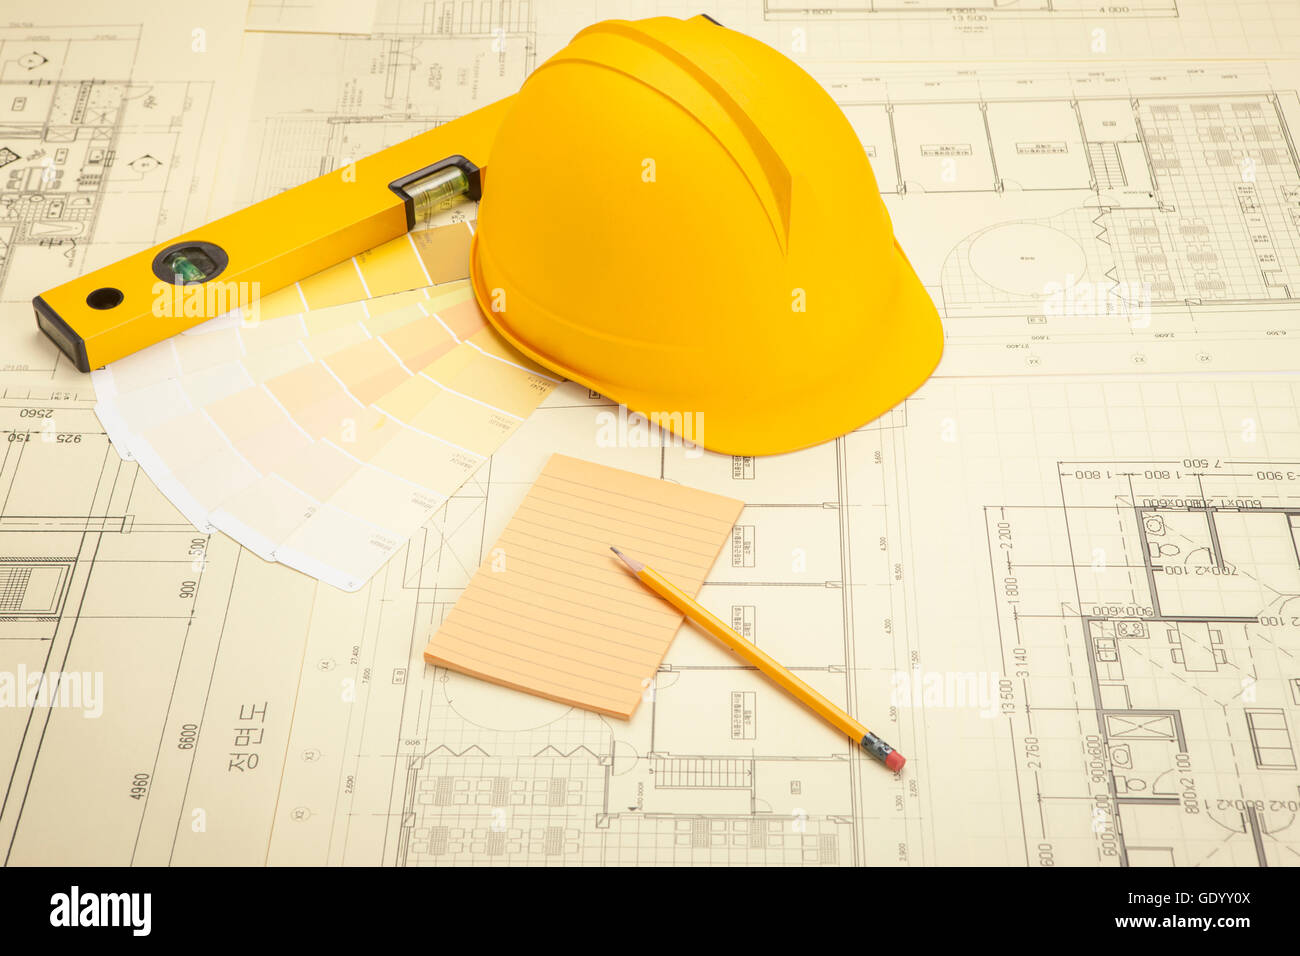 hight resolution of objects related to construction such as floor plan tool helmet color code diary and pencil